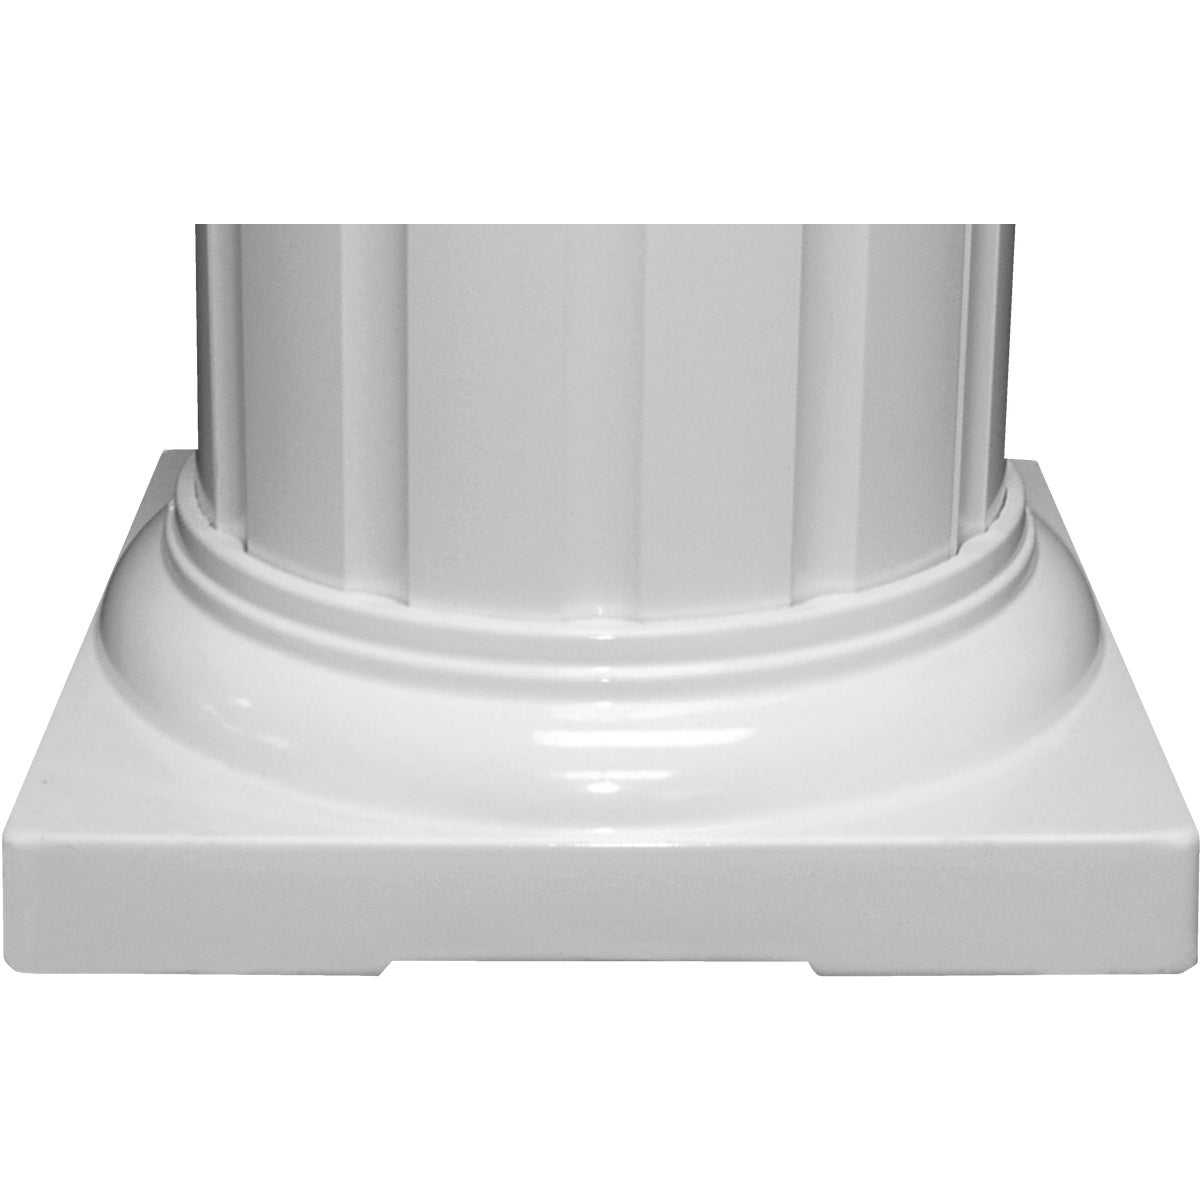 "6"" ROUND CAP/BASE SET - RDSTD06WHT by DIXIE PACIFIC"